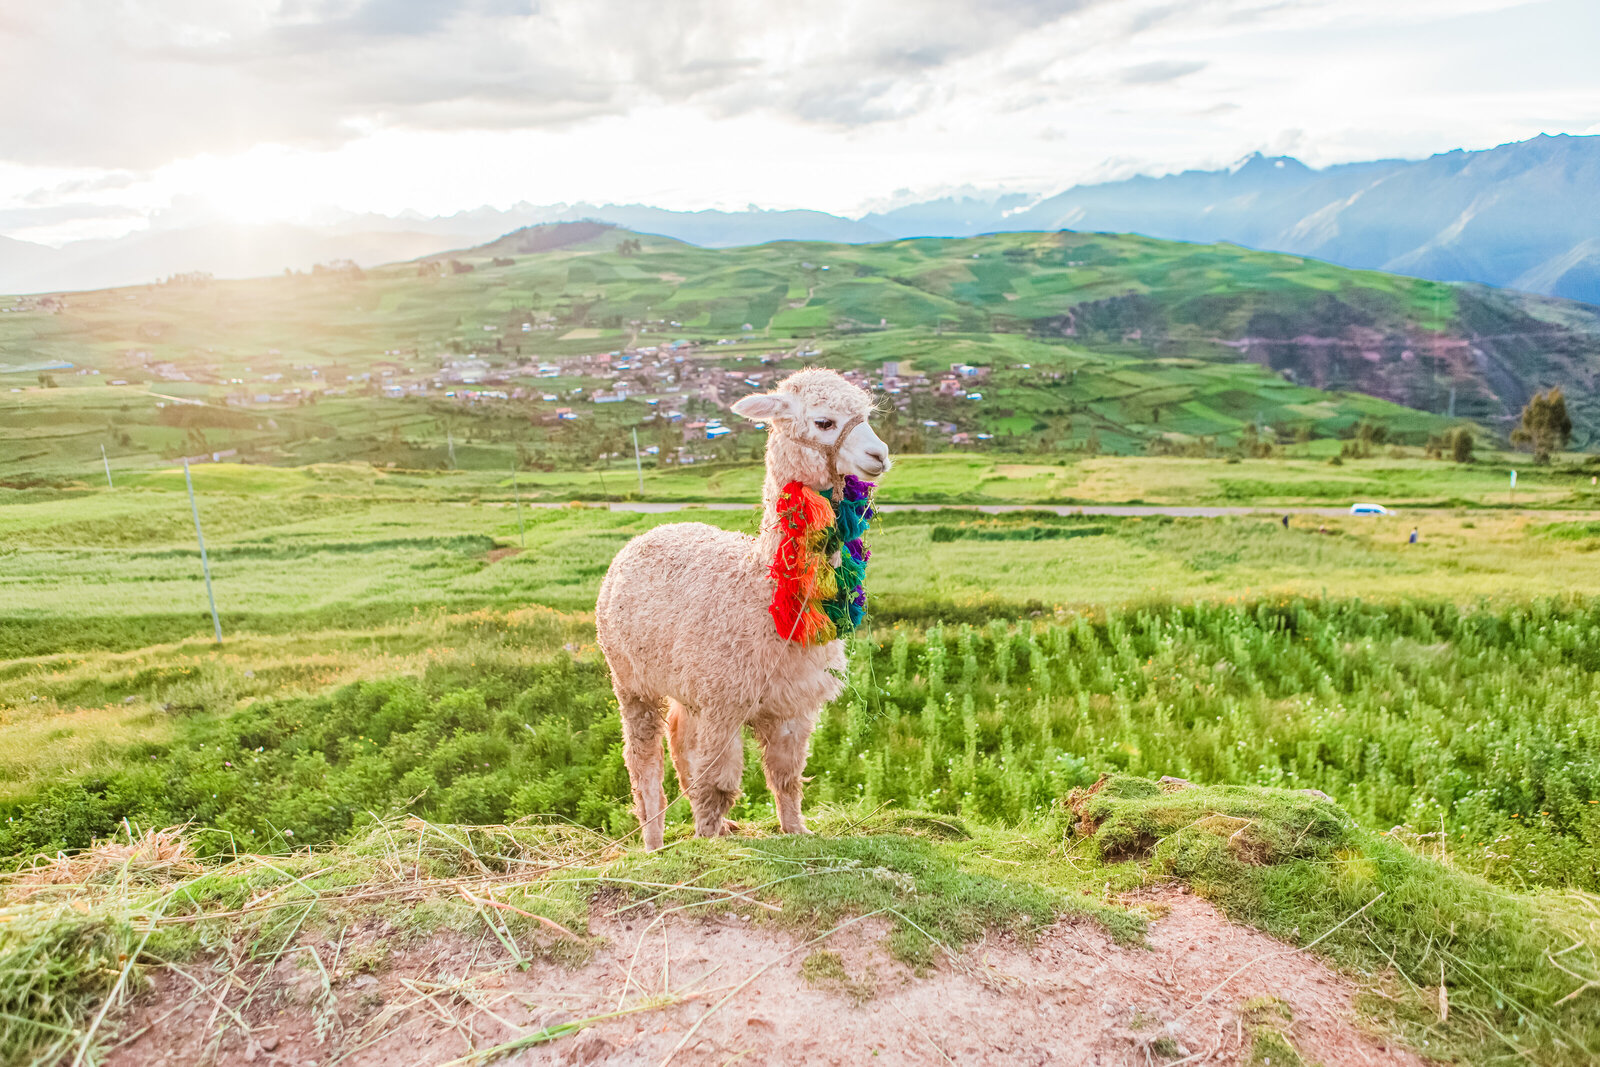 042-KBP-Peru-Cusco-Sacred-Valley-Llamas-004